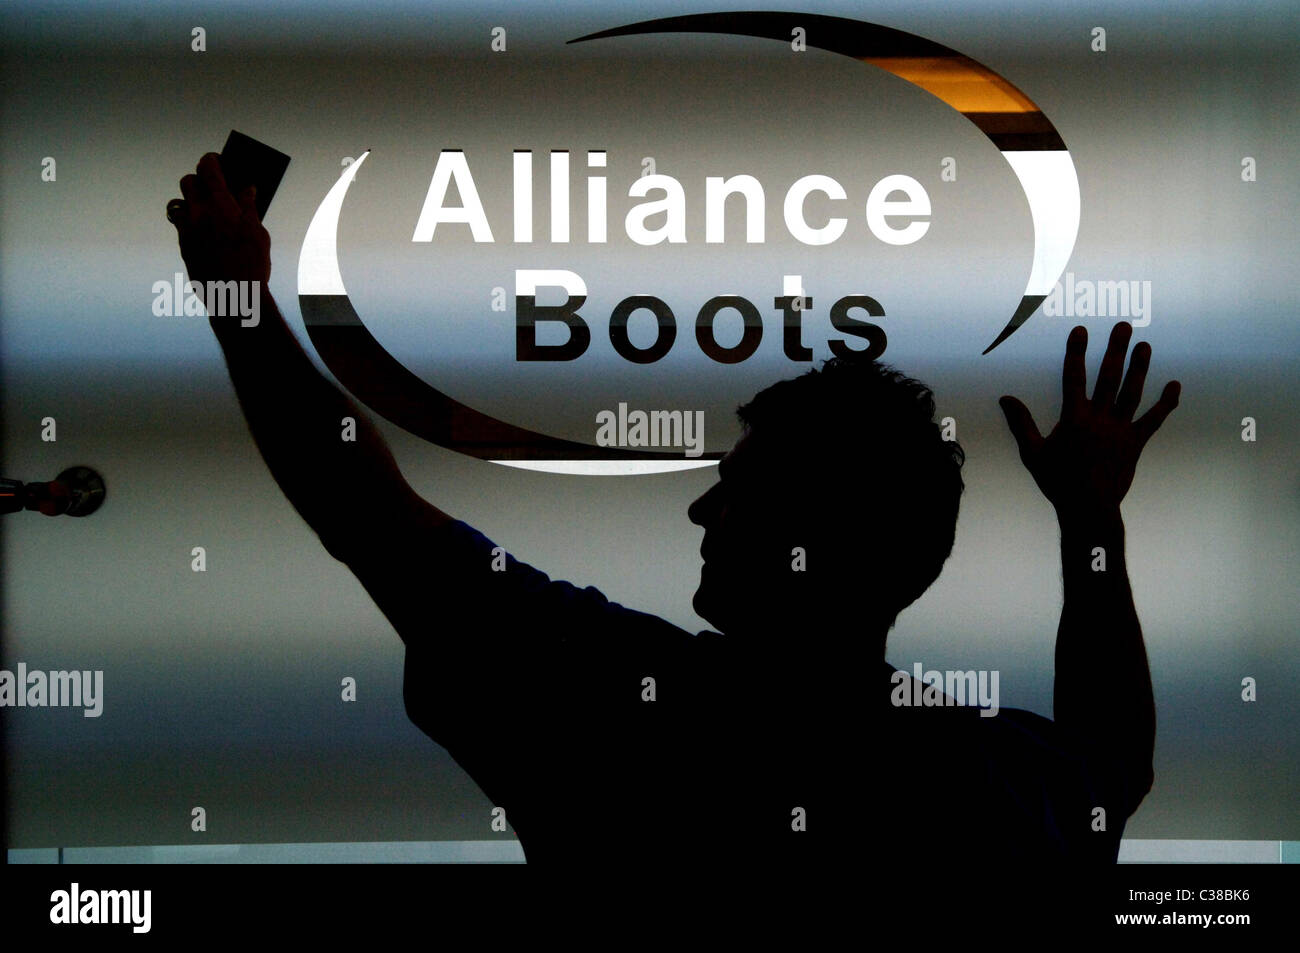 A worker cleaning an Alliance Boots frosted window logo. - Stock Image